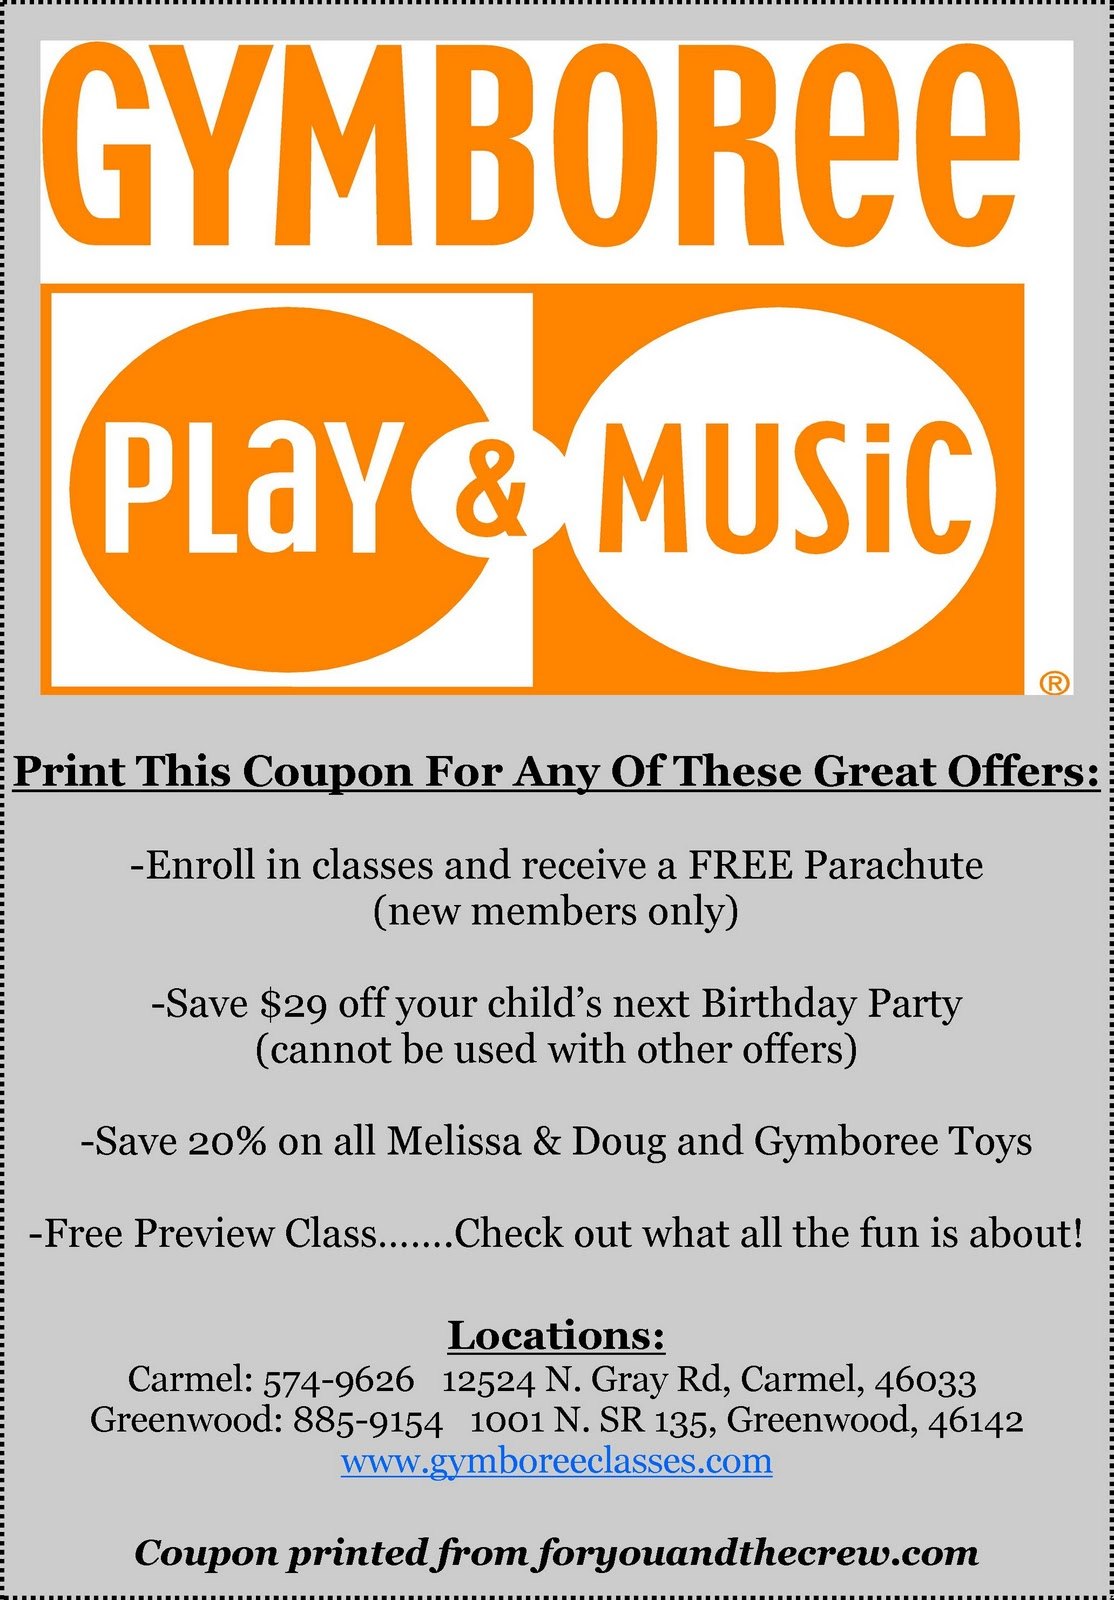 photograph relating to Gymboree Printable Coupon named Gymboree retail store discount coupons 2018 - Mydealz.de freebies